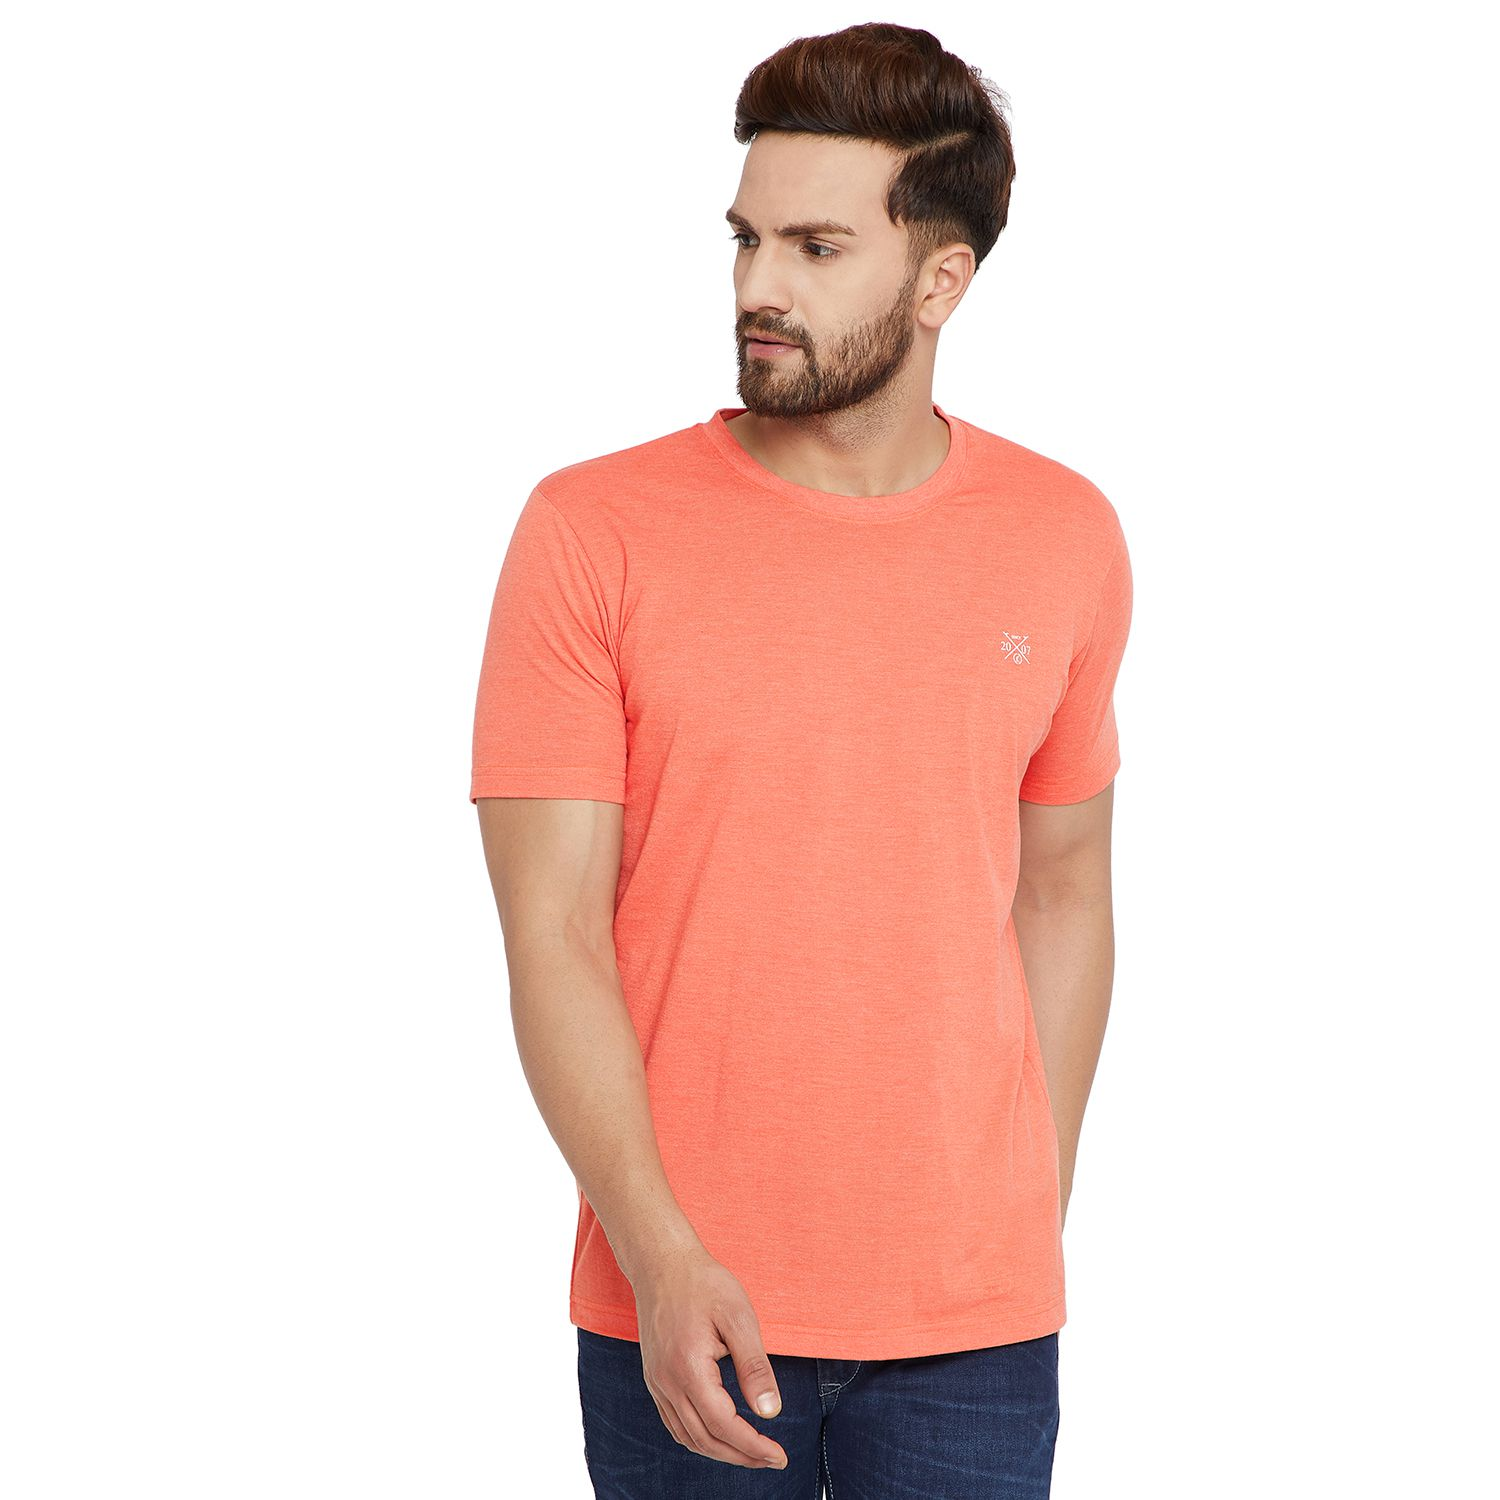 Canary London Orange Round T-Shirt